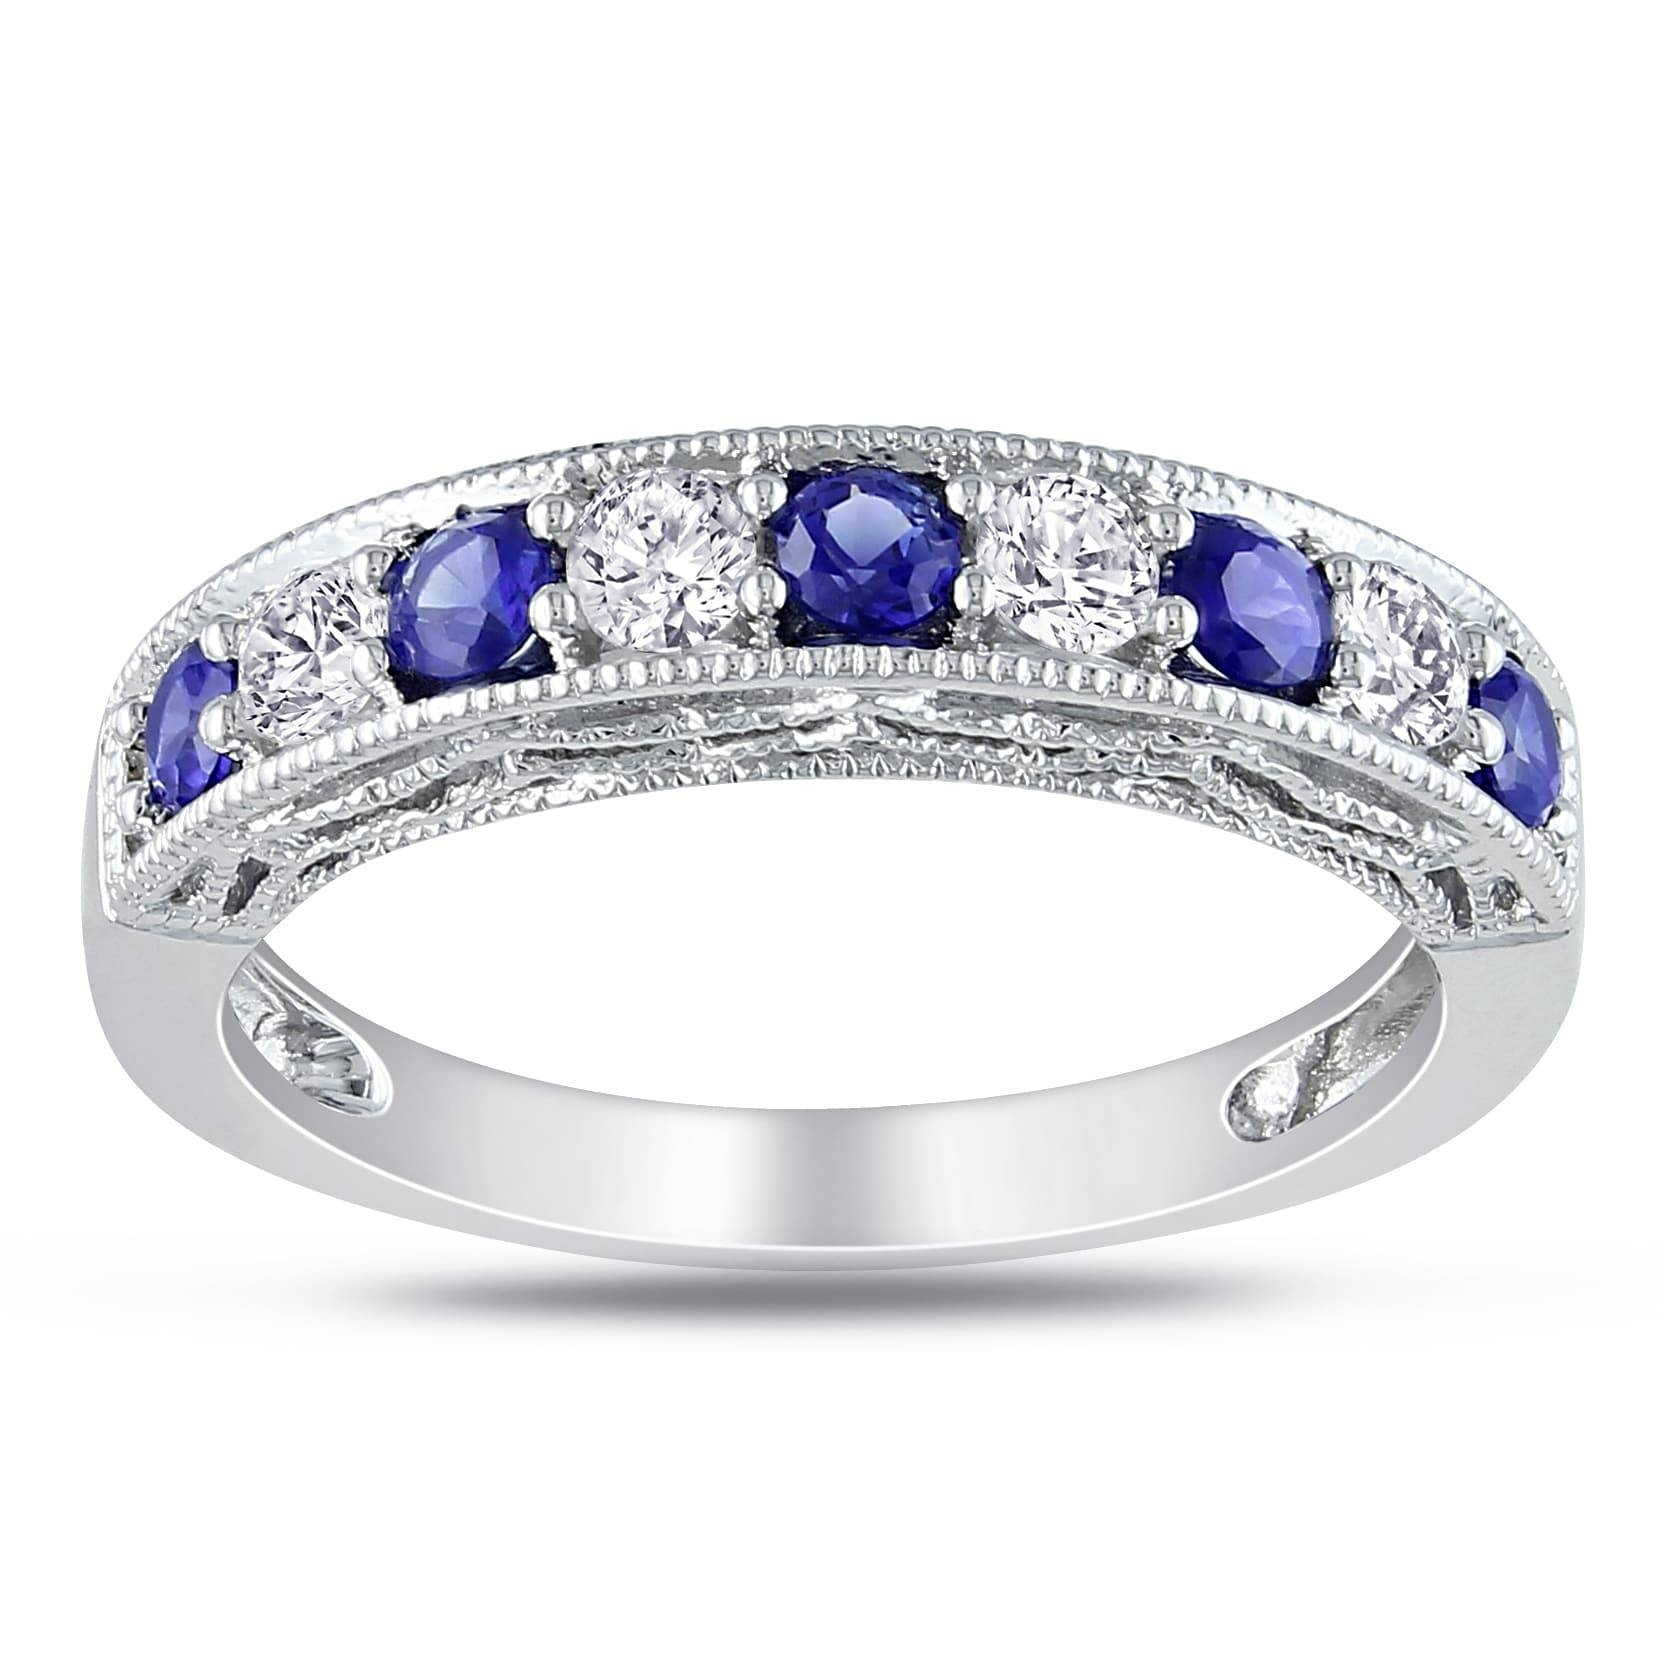 Miadora Sterling Silver White Sapphire And Gemstone Stackable Throughout Recent Sapphire Anniversary Rings (Gallery 19 of 25)